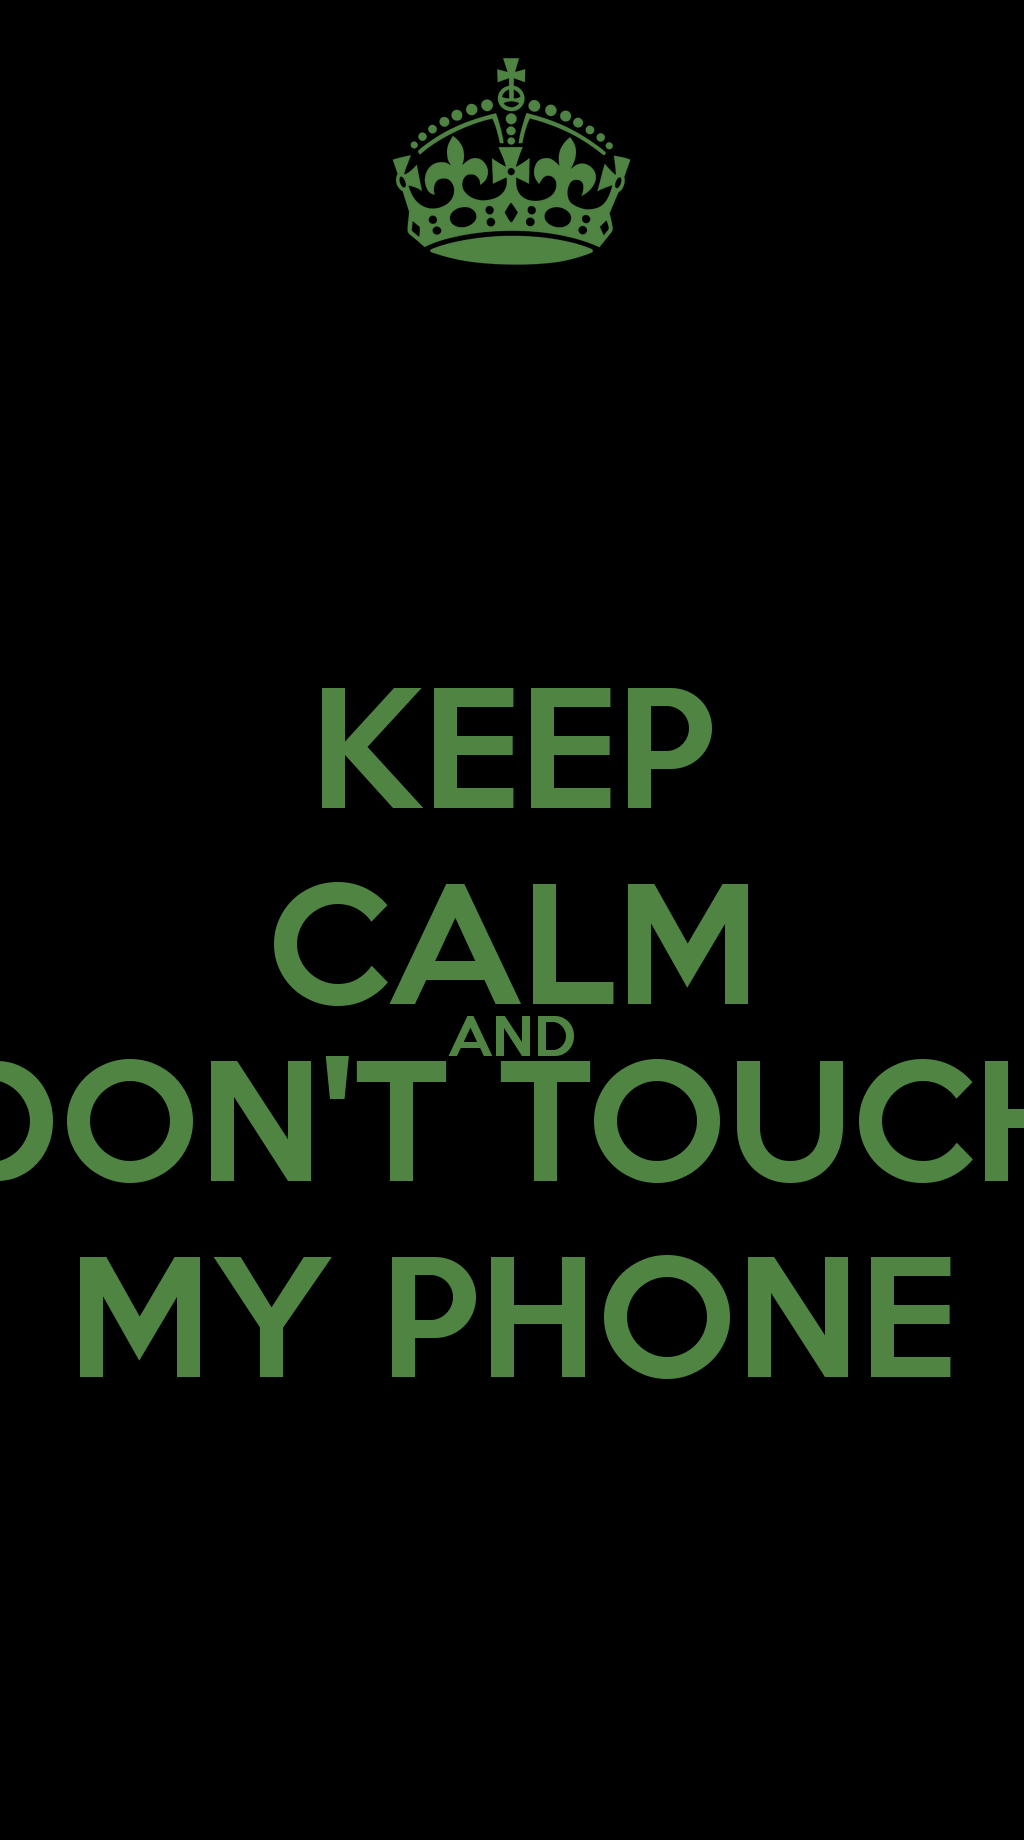 50+] Don T Touch My Phone Wallpapers on